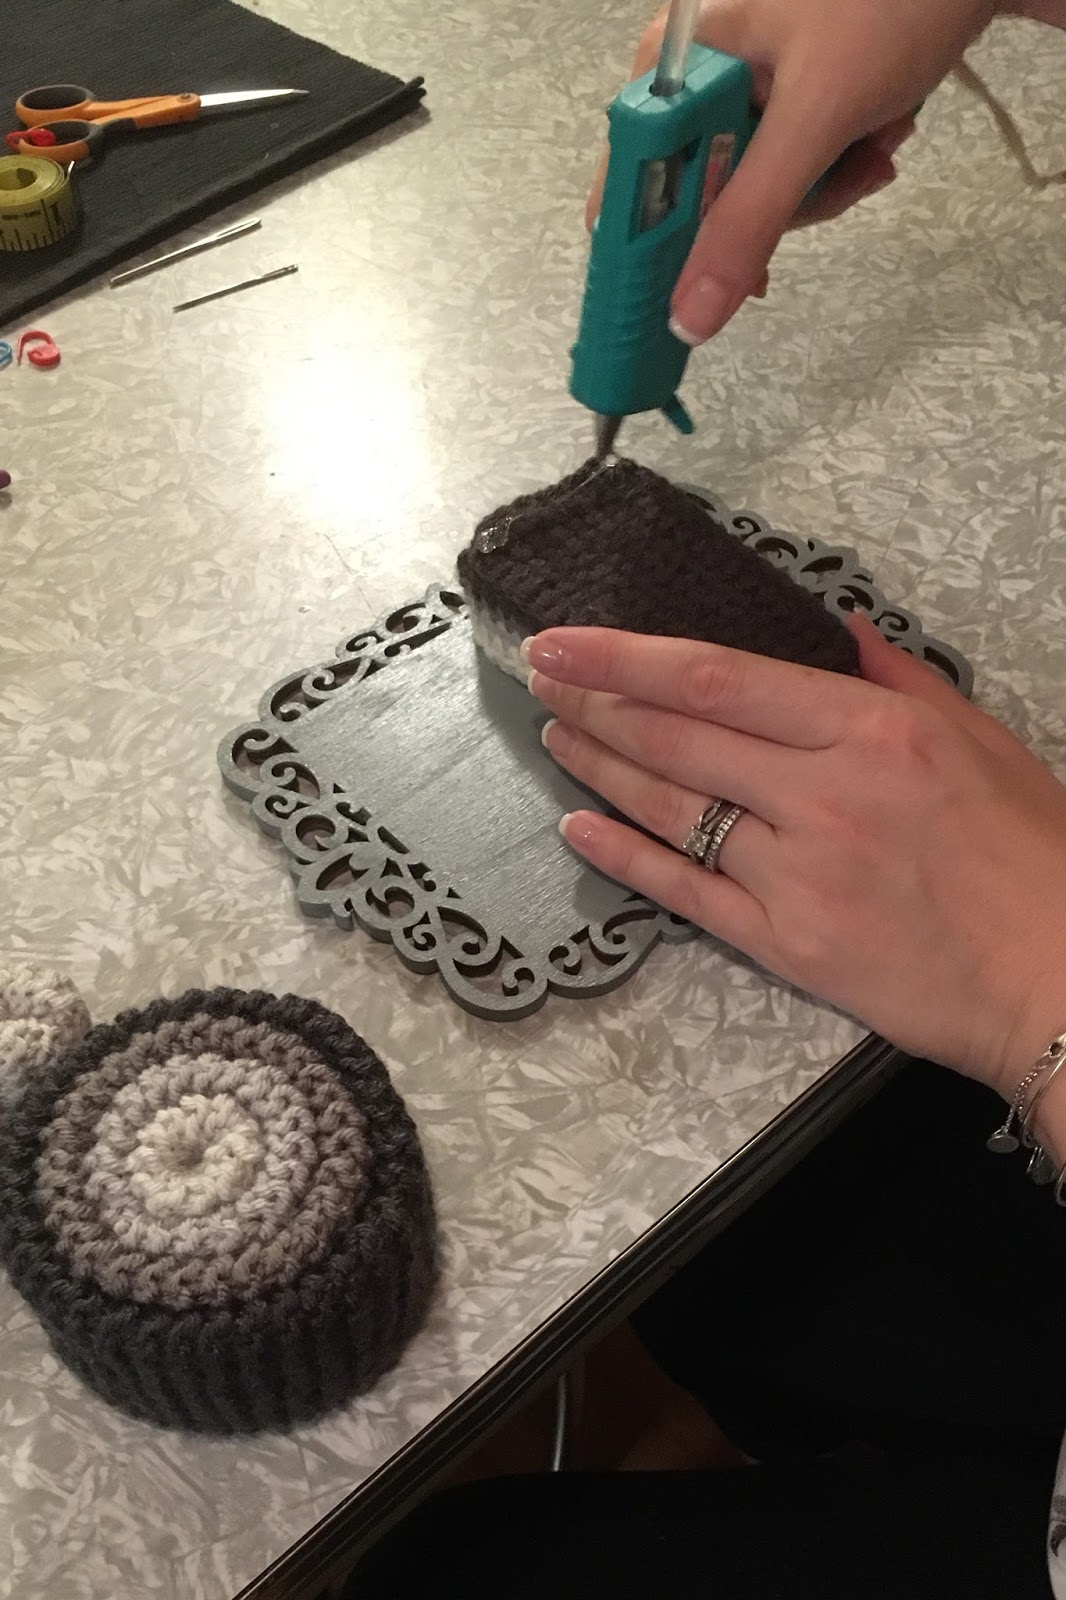 crochet craft idea